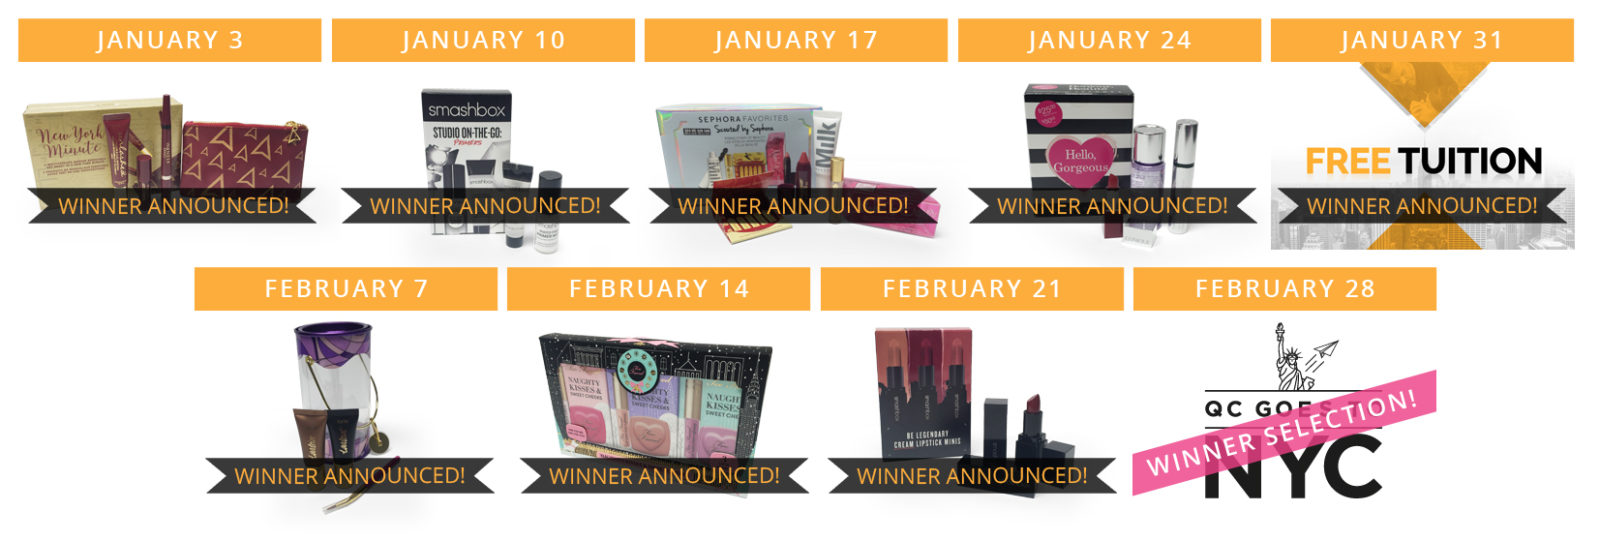 QC Makeup Academy Sweepstakes Free Prize Collage